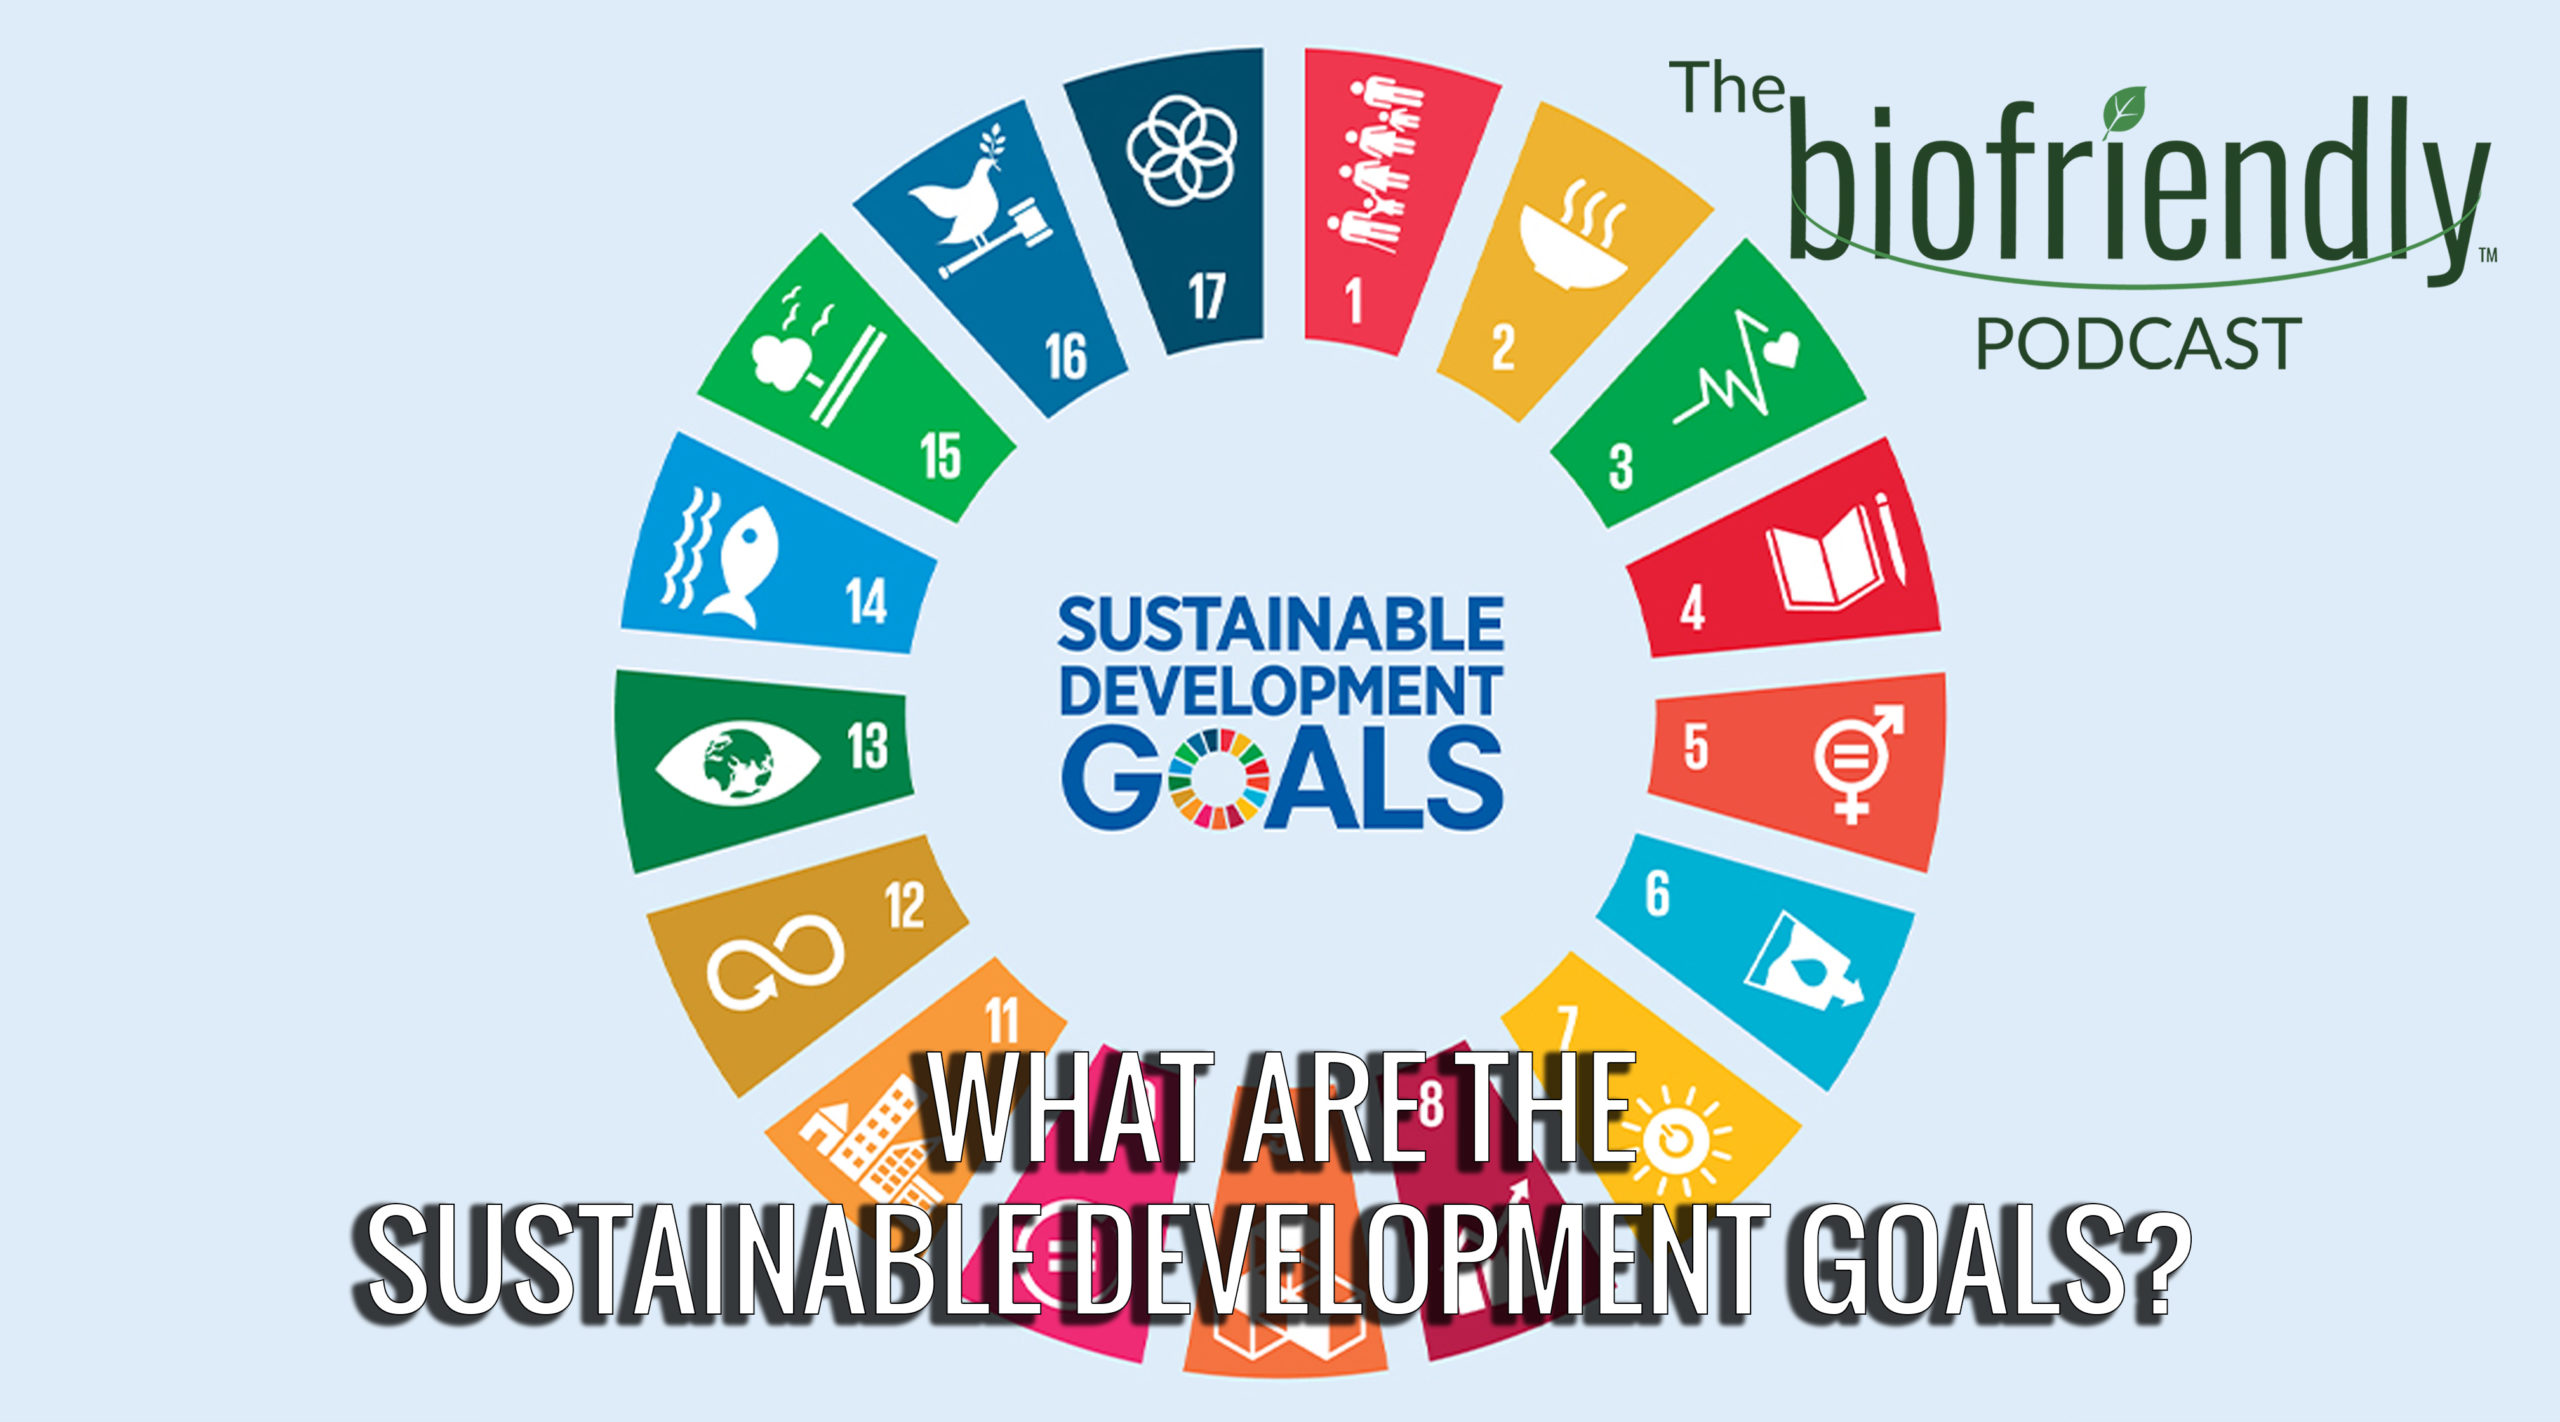 The Biofriendly Podcast - Episode 56 - What Are The Sustainable Development Goals?